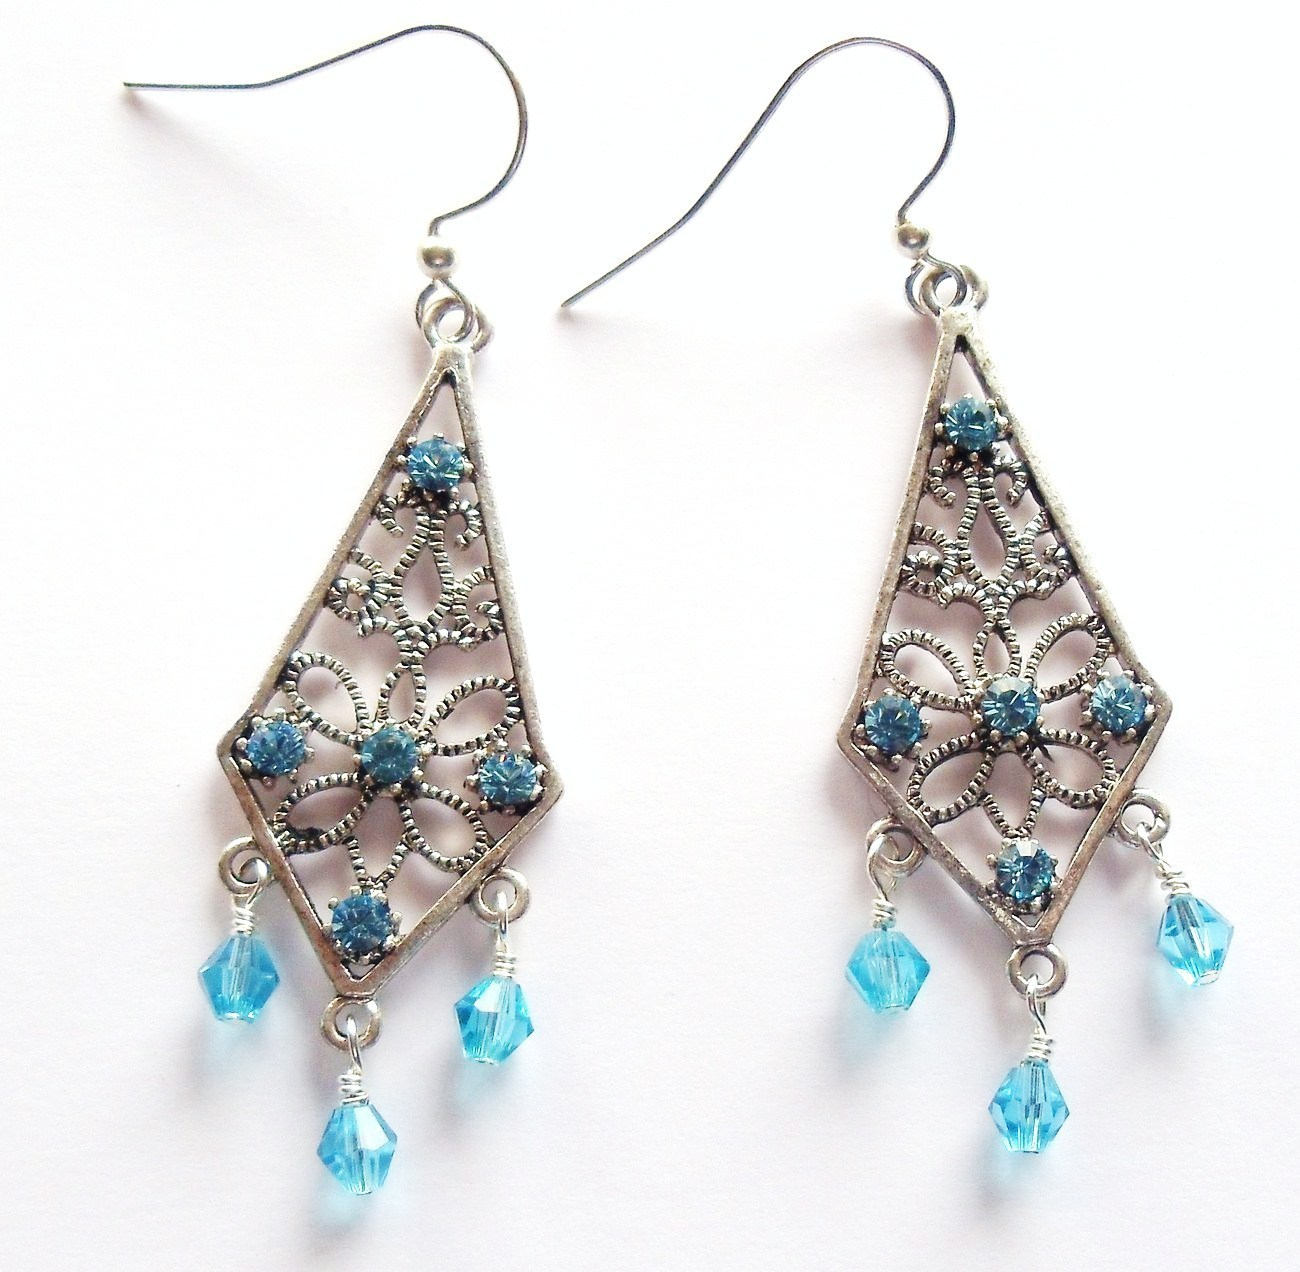 Swarovski Elements Aquamarine Earrings - Birthstone!!